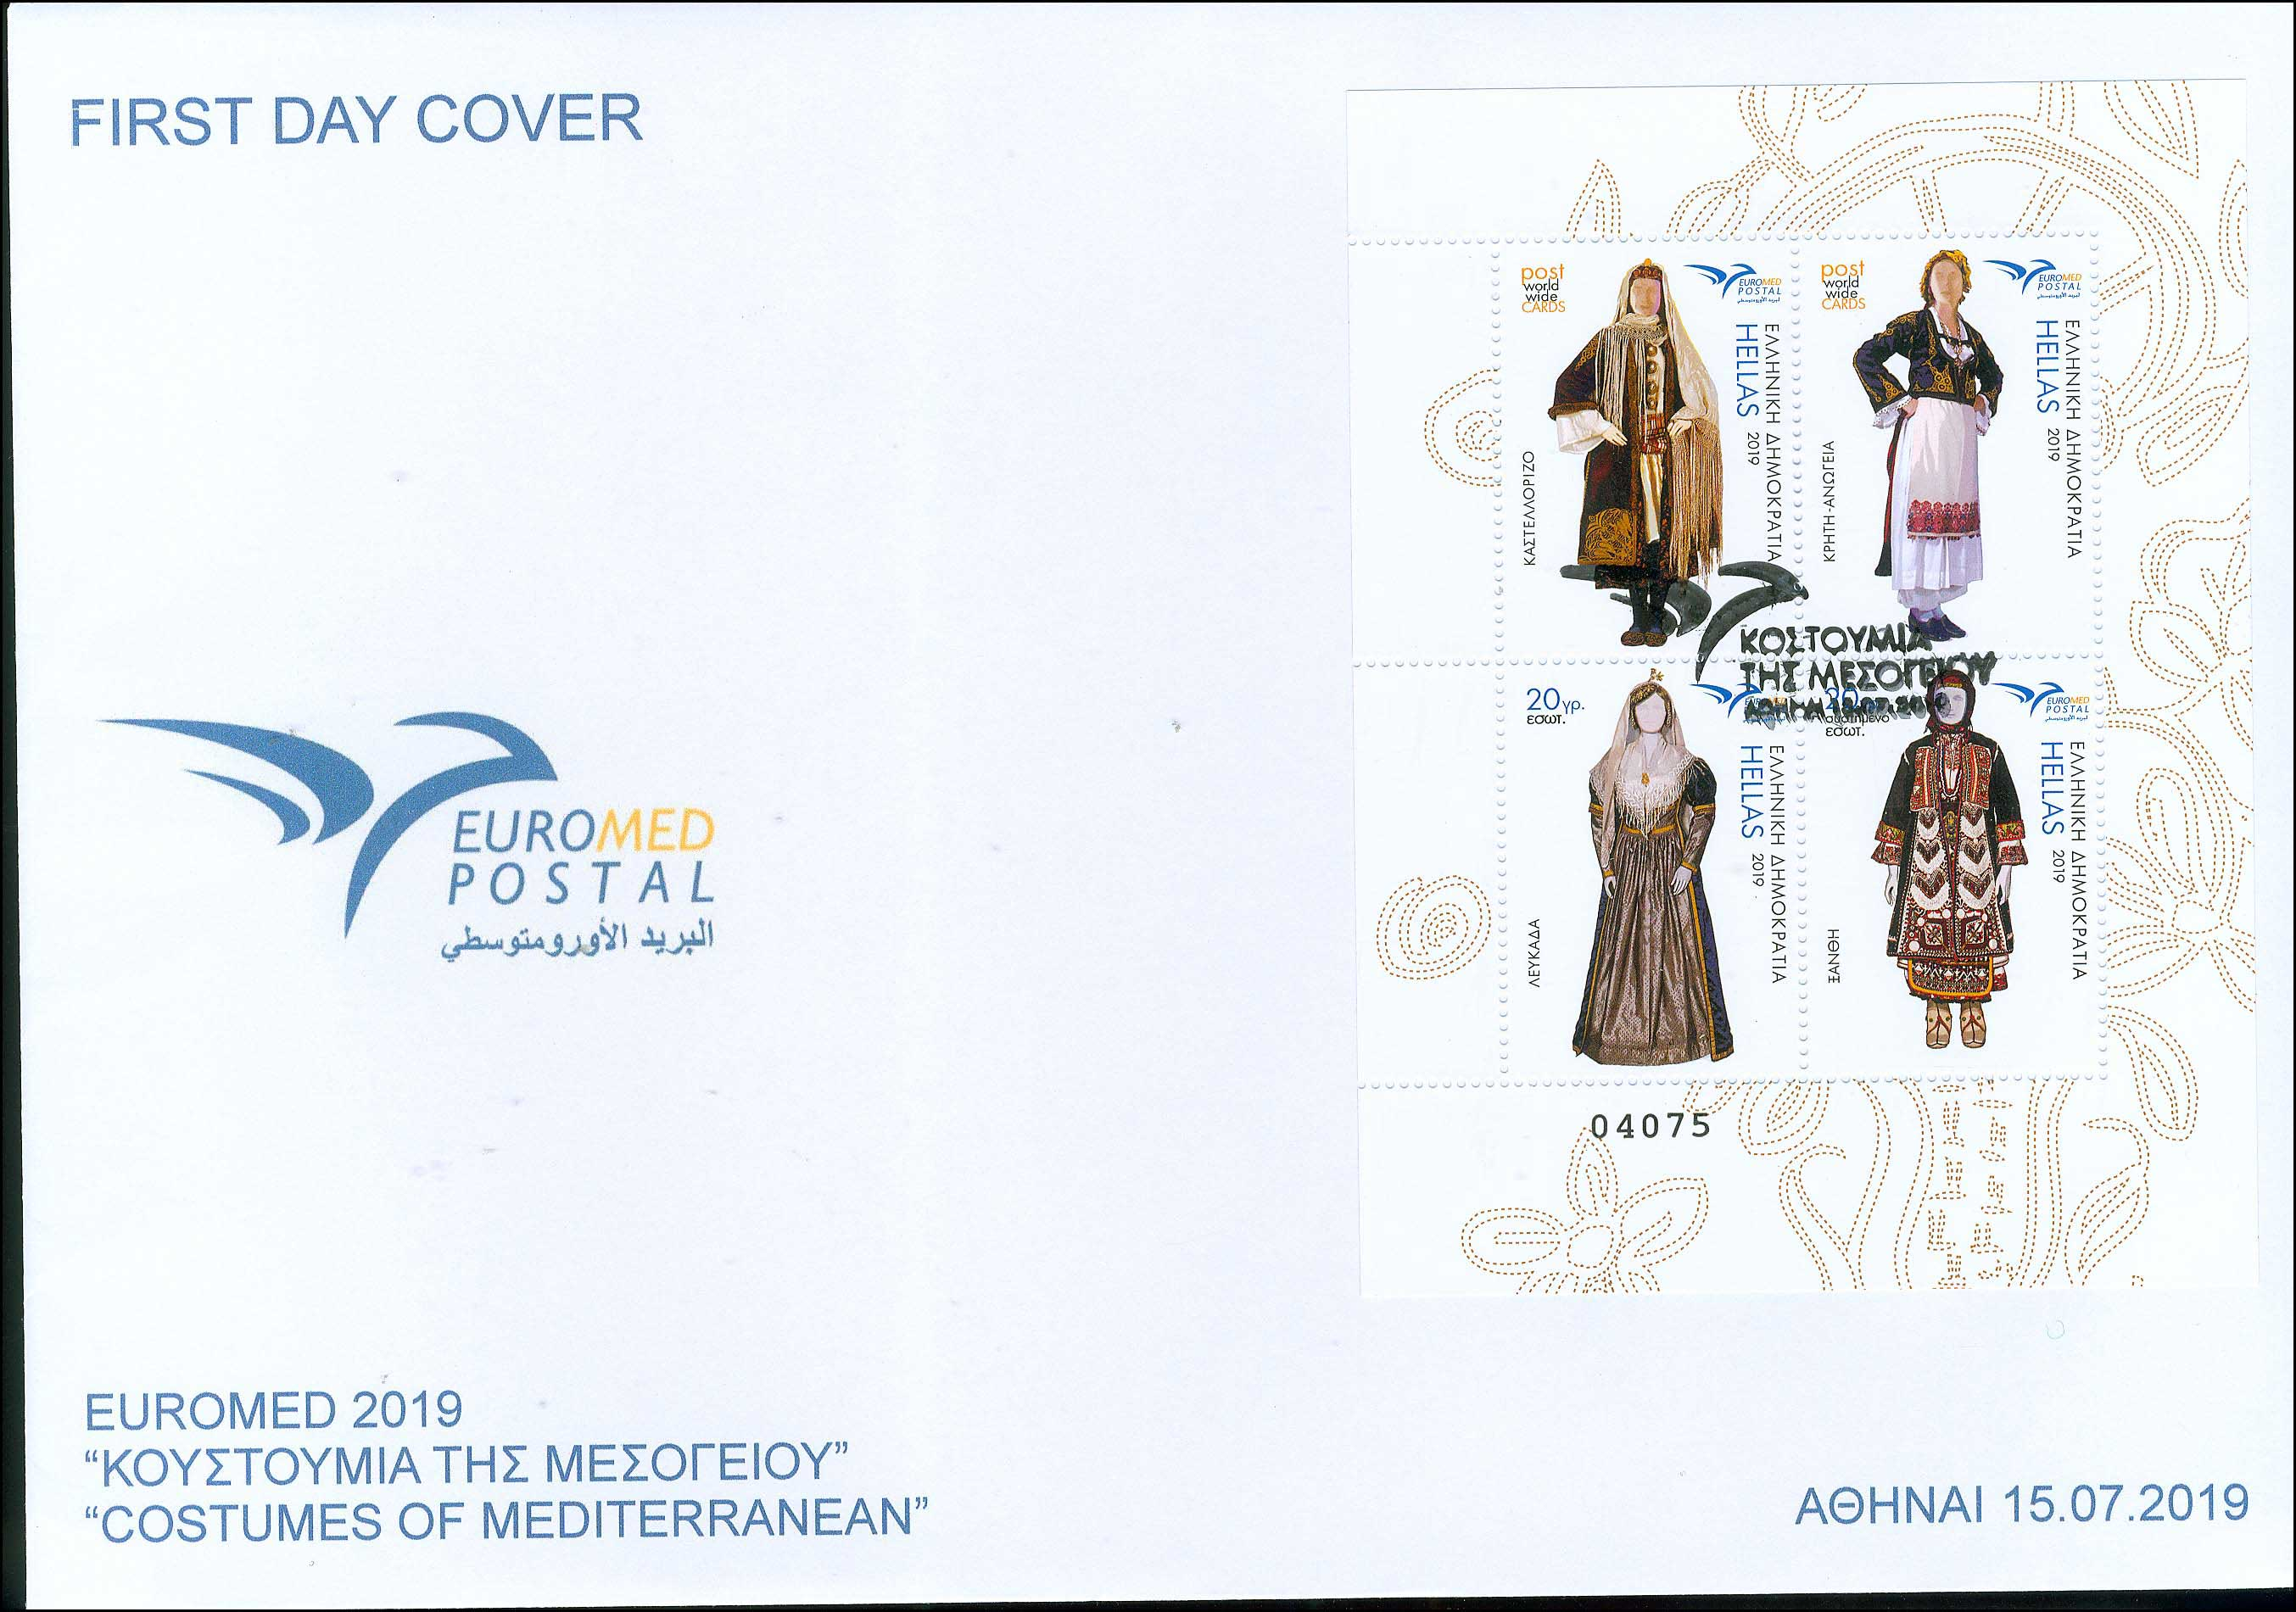 Lot 655 - -  FIRST DAY COVER First day cover -  A. Karamitsos Public Auction 668 General Philatelic Auction